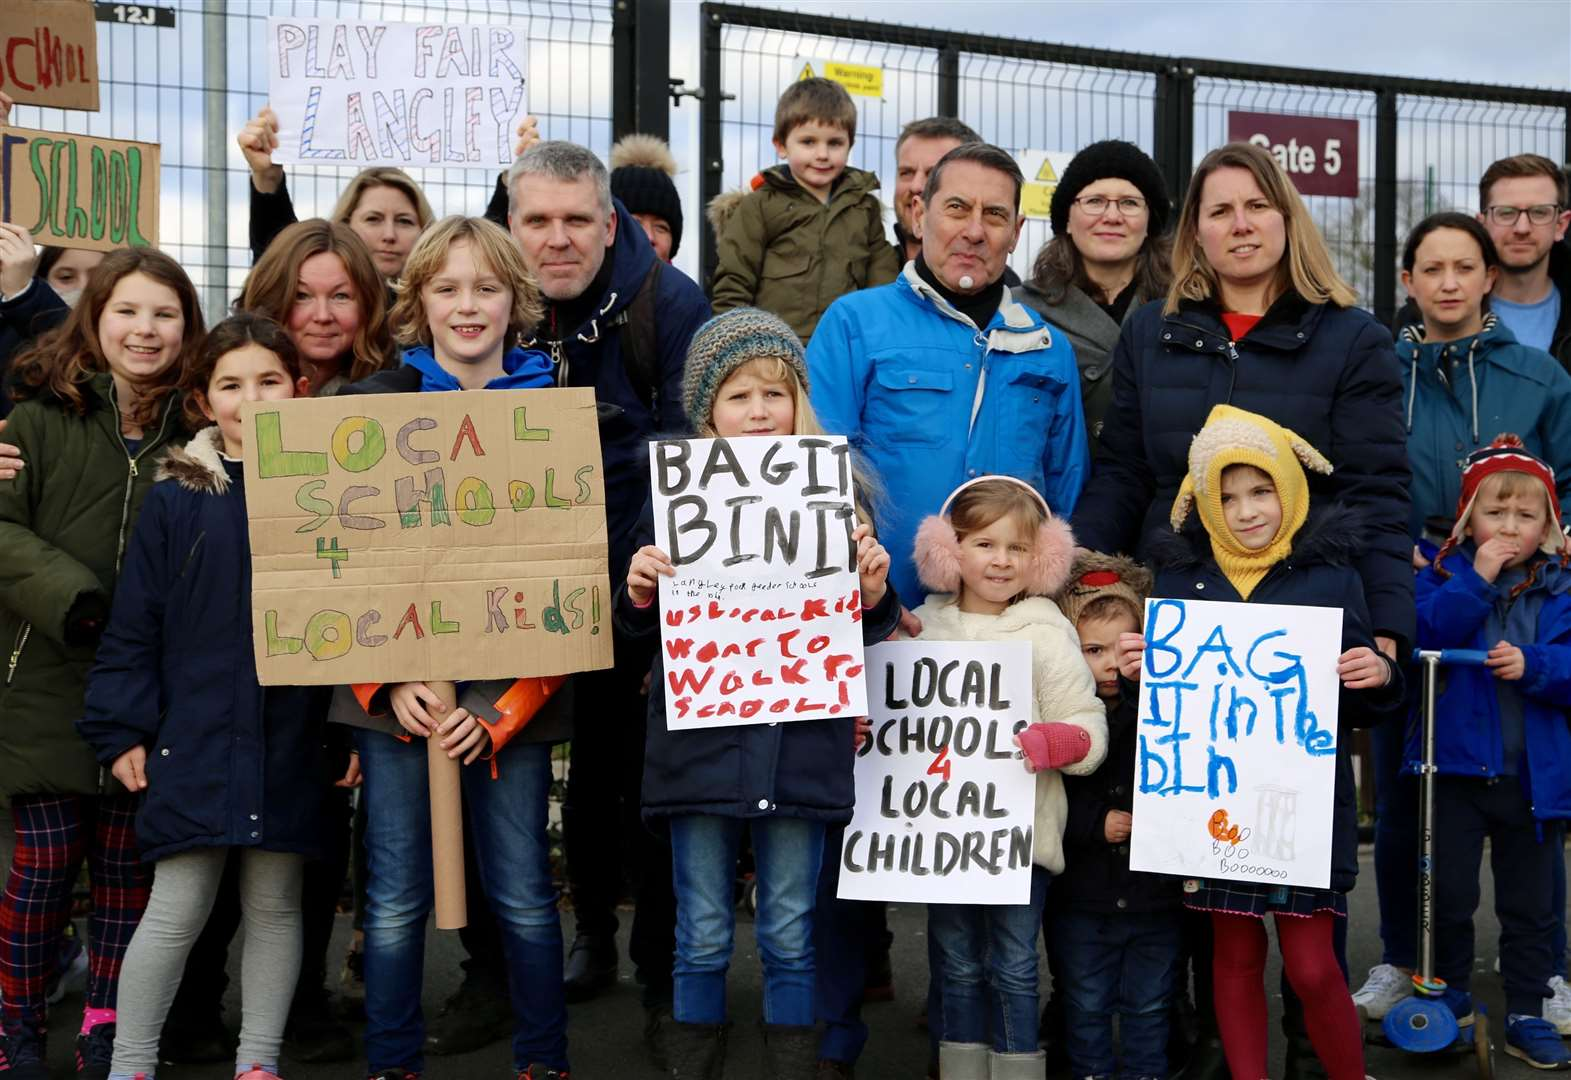 Protest over 'unfair' school admissions plans